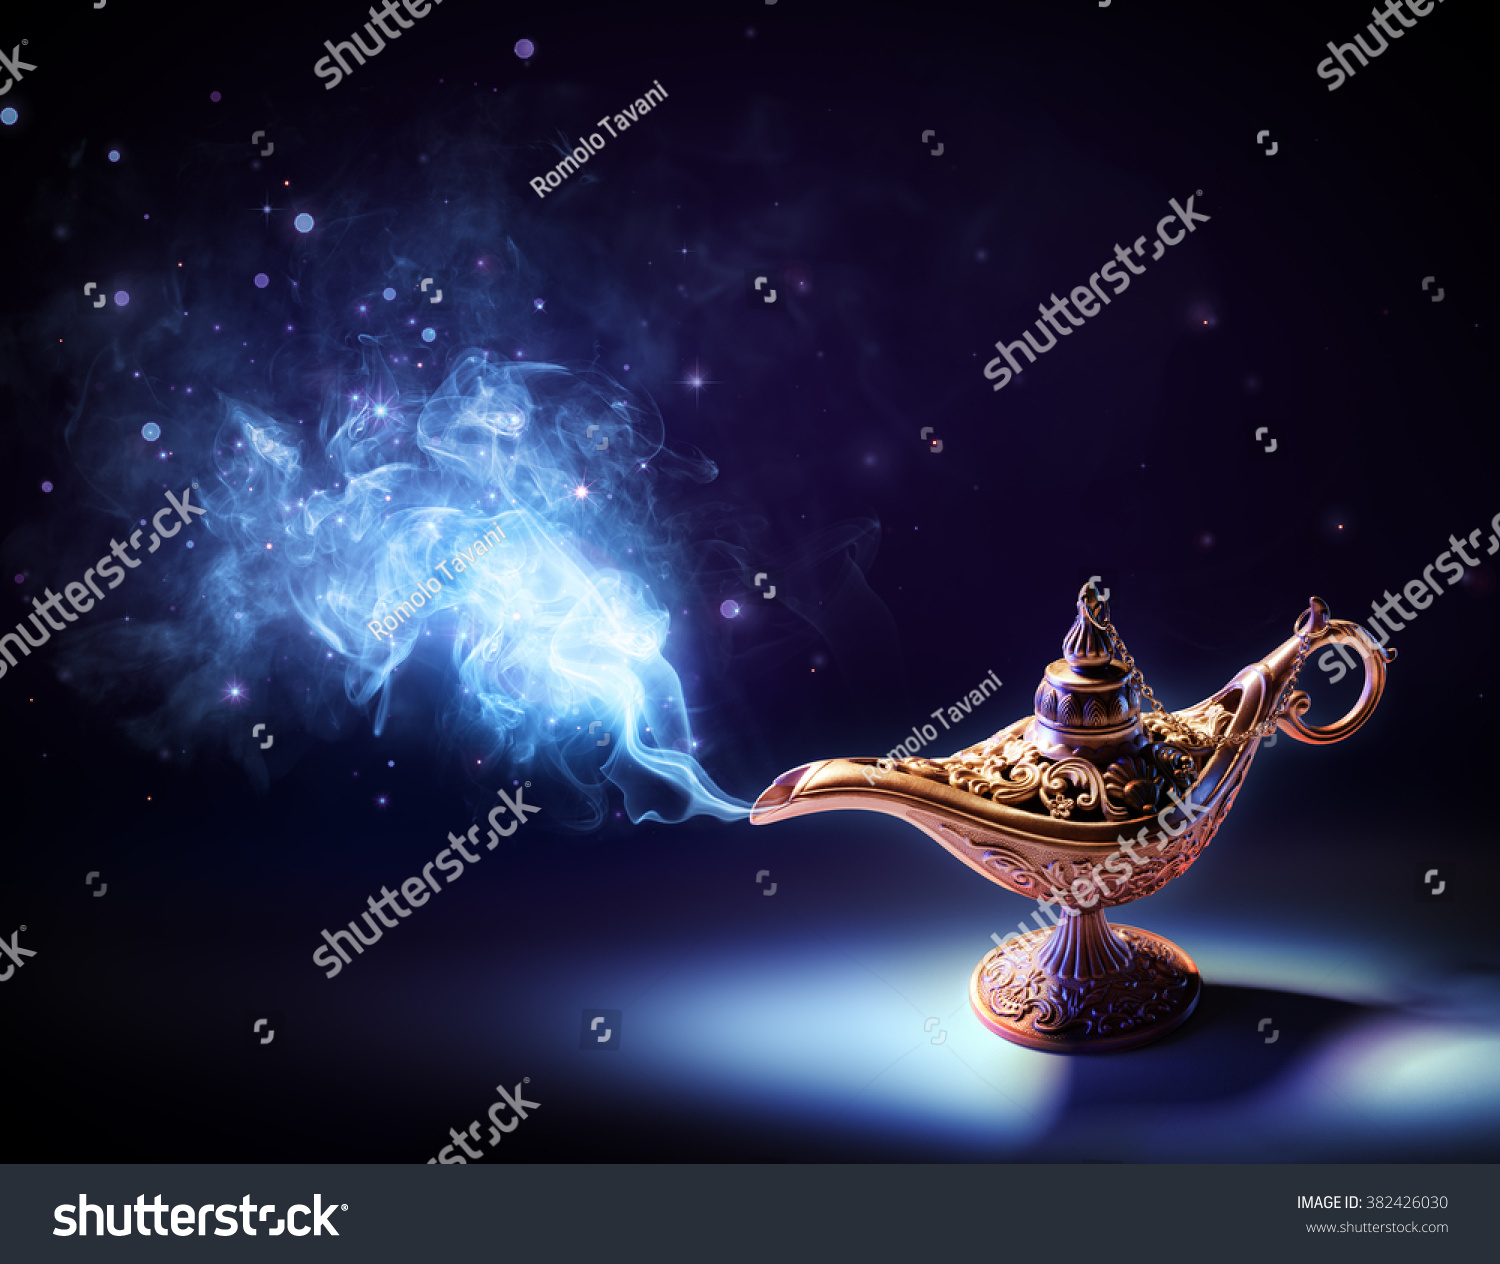 Lamp Wishes Magic Smoke Coming Out Stock Photo 382426030 ... for Magic Lamp With Smoke  56mzq